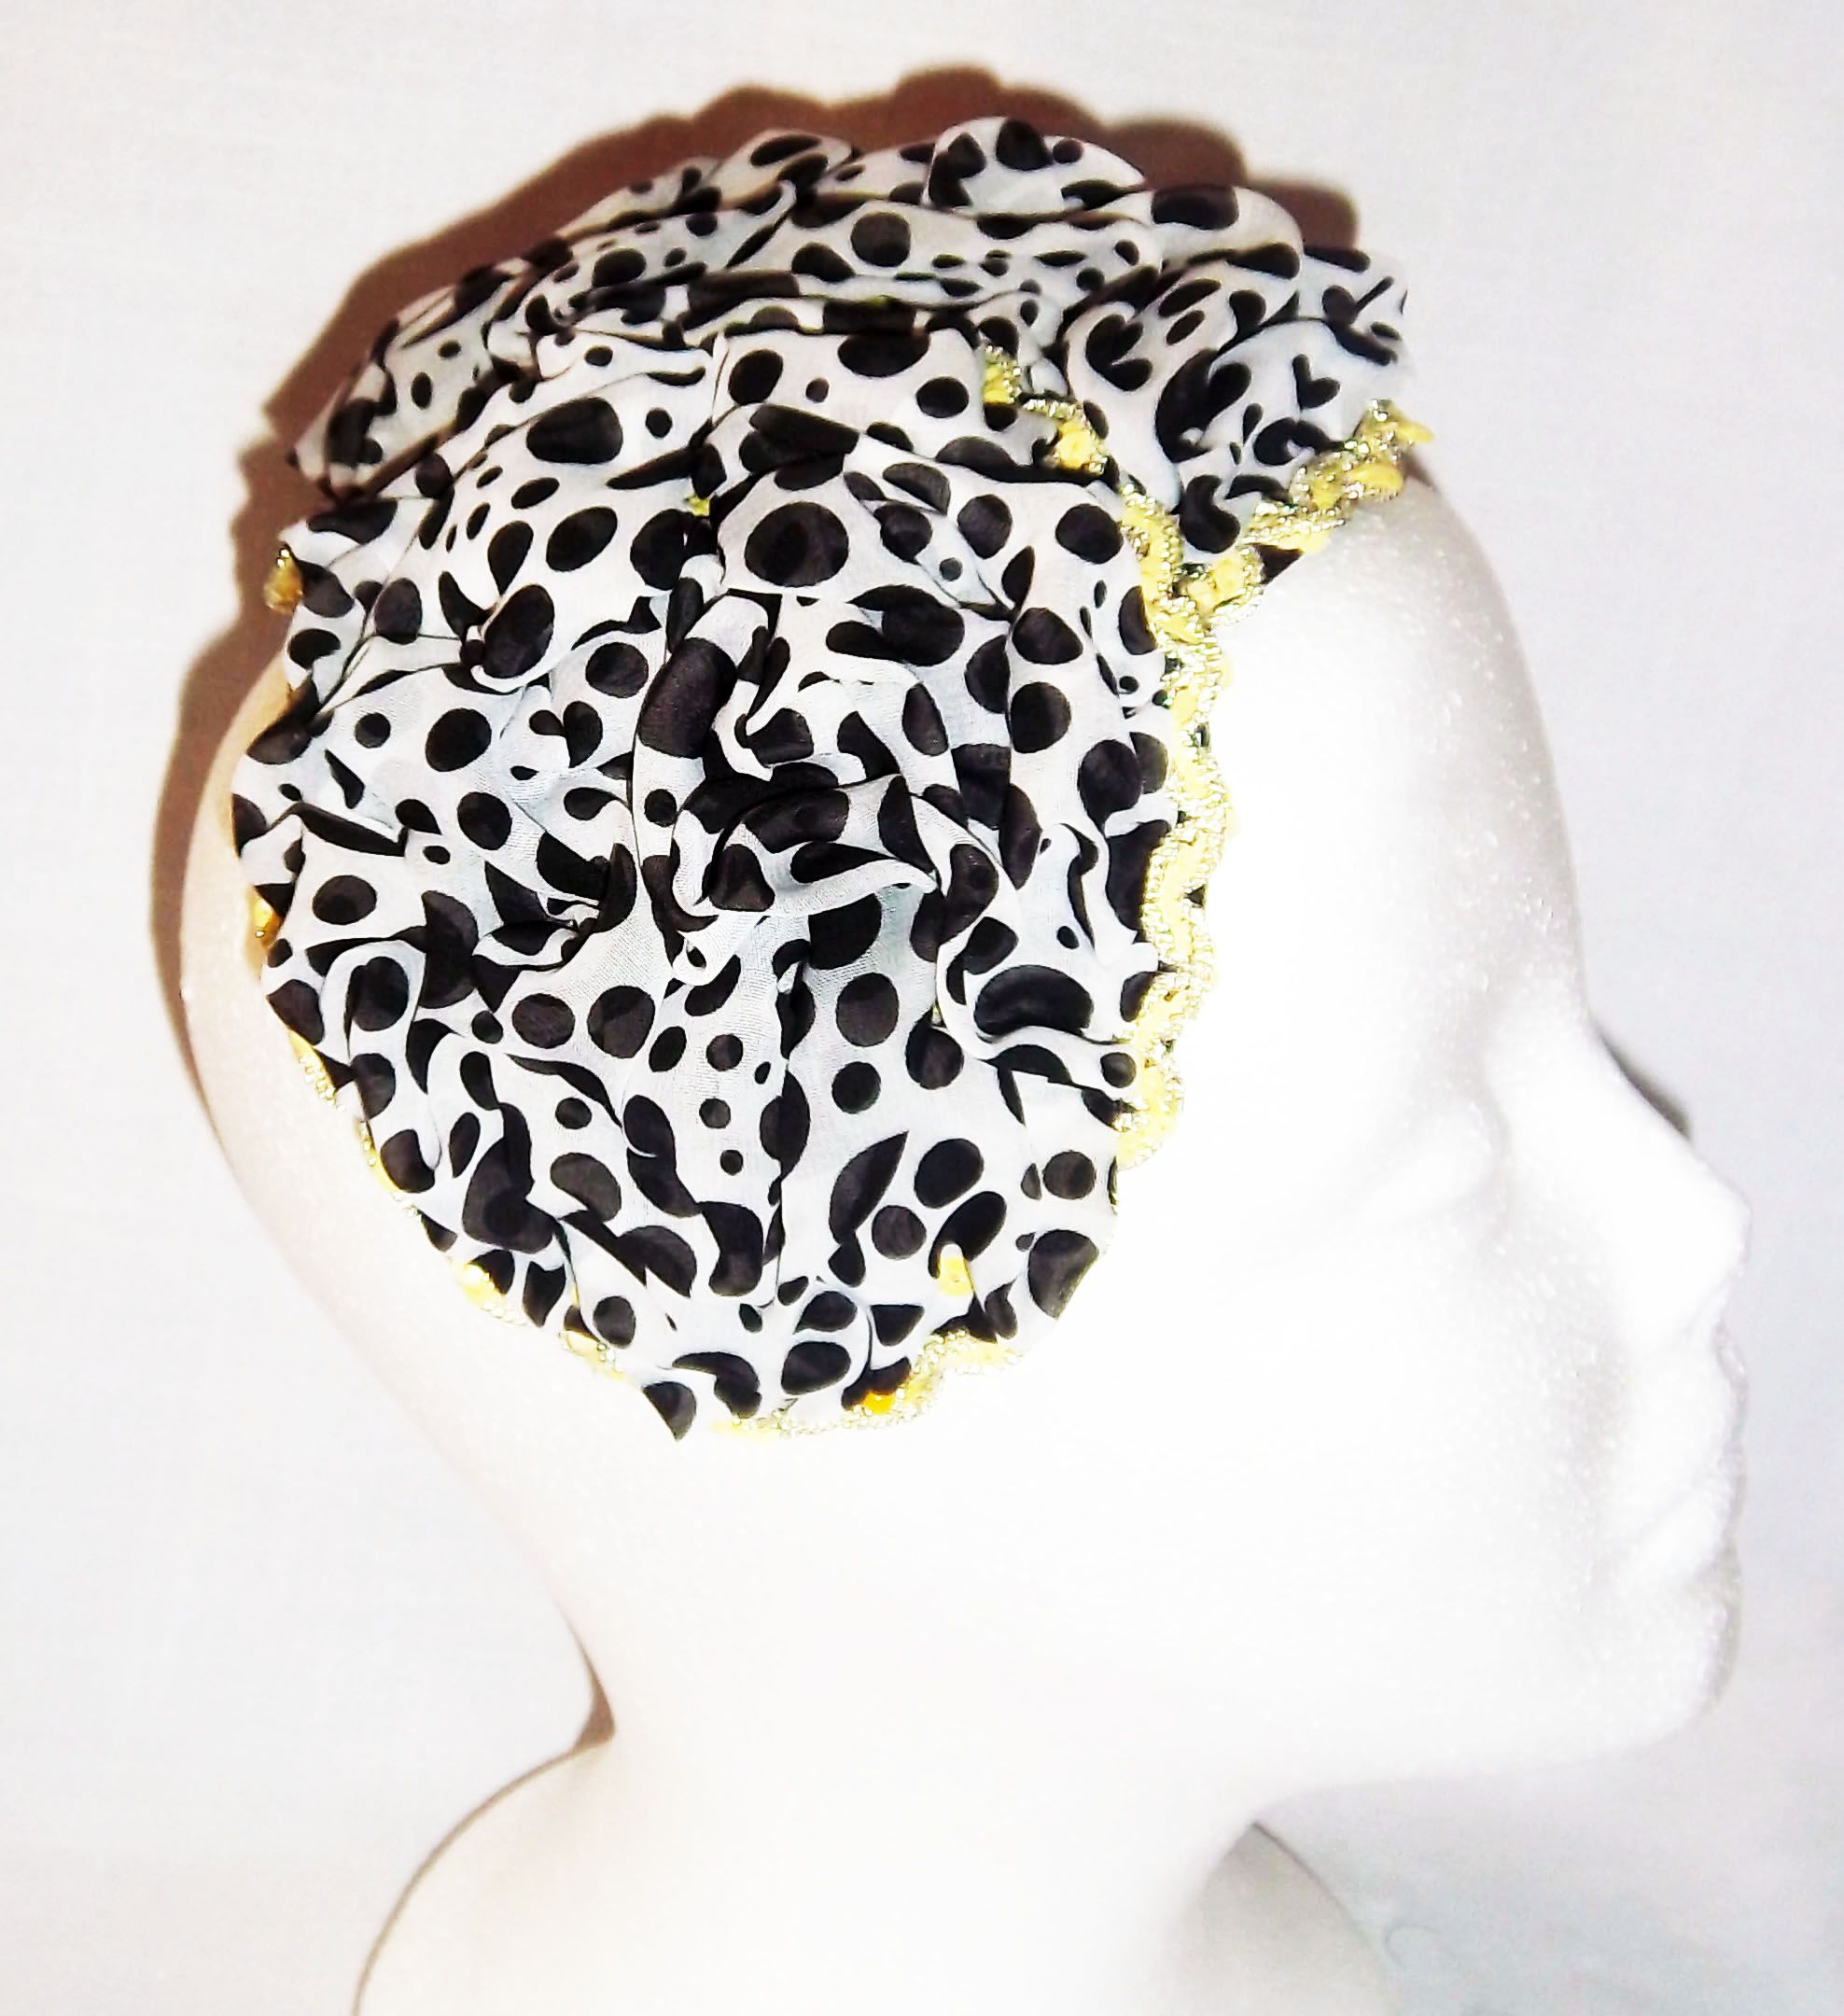 Black and White Polka Dot Hat made by manipulating fabric to create interesting design. Perfect for church, weddings and other special occasions. Trimmed with yellow